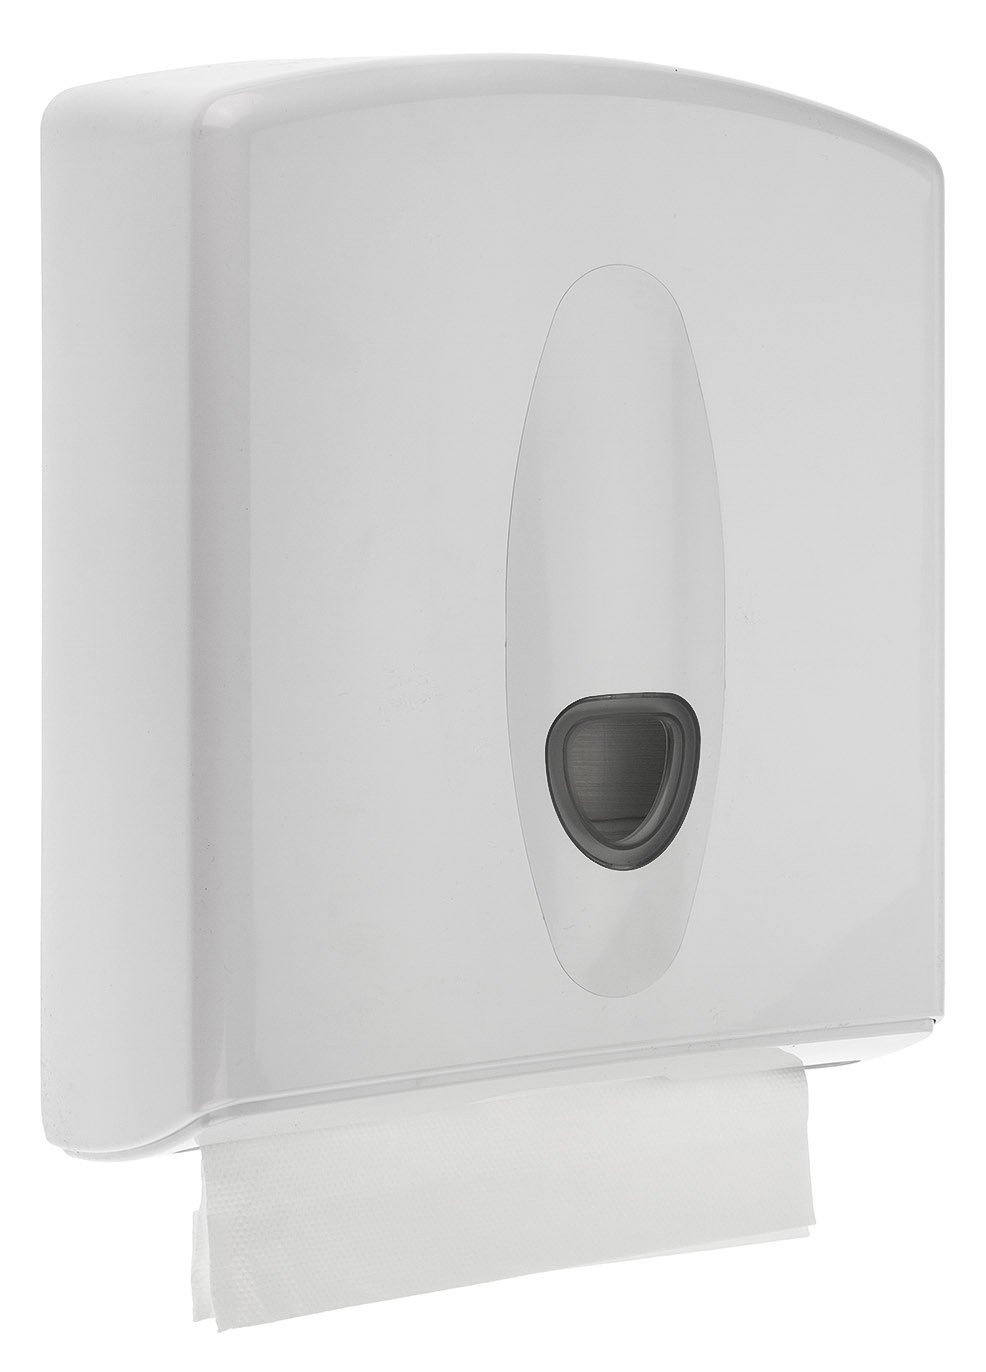 Euro Products | Pearl | Vouwhanddoekdispenser Z-vouw & interfold | Wit